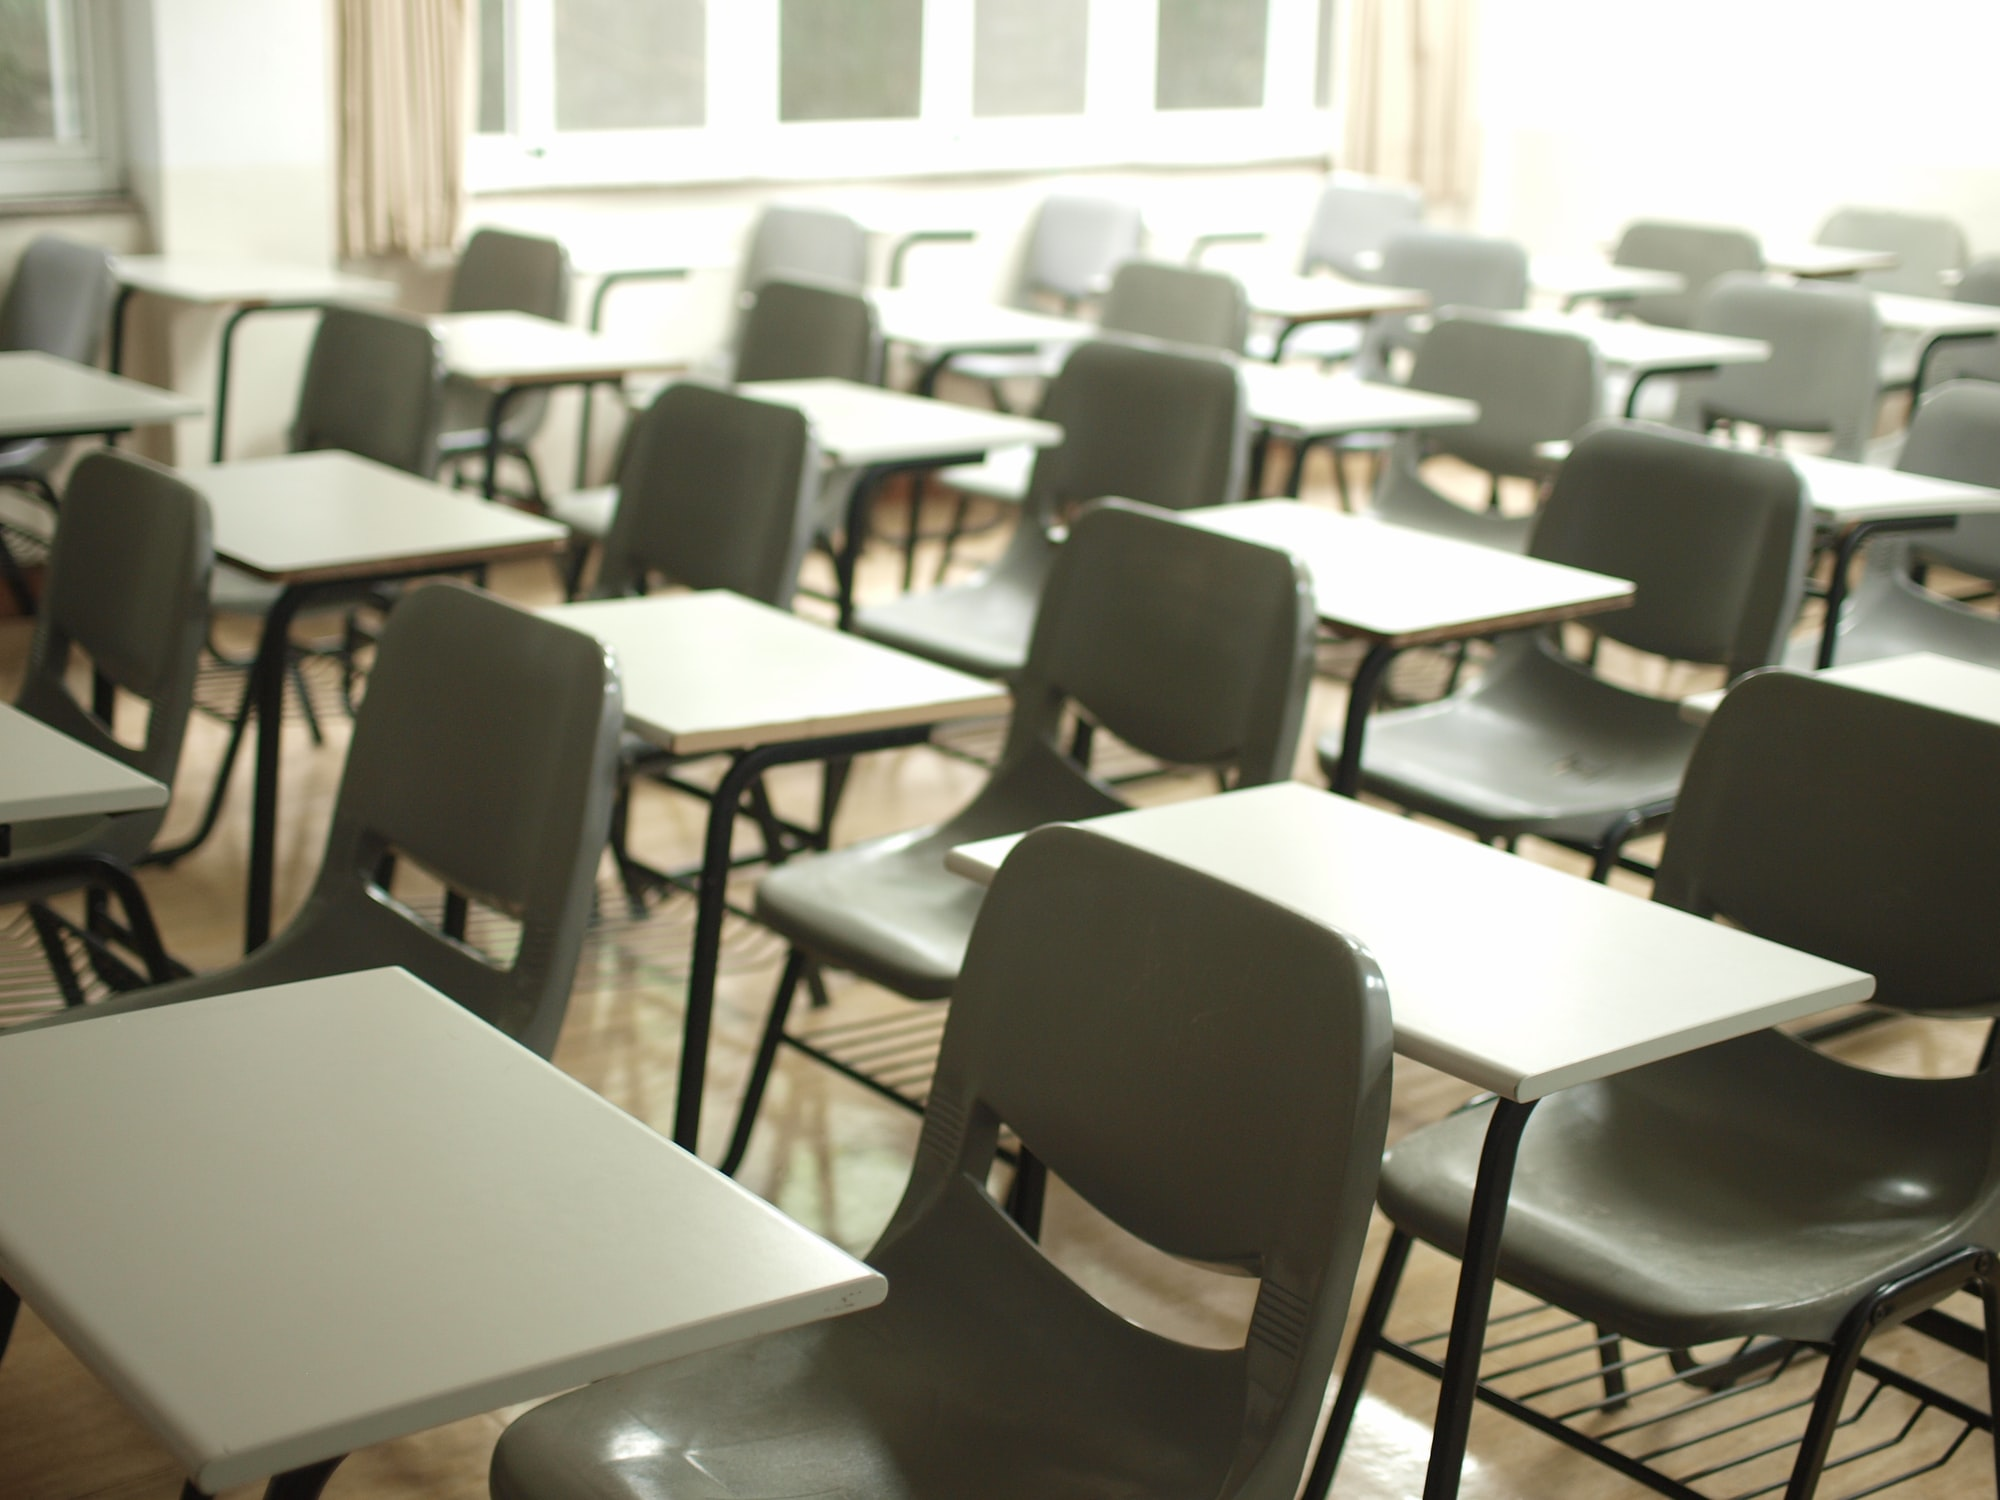 162 New COVID-19 Cases at Buncombe County Schools This Week; Transparency Policy Remains Unclear.